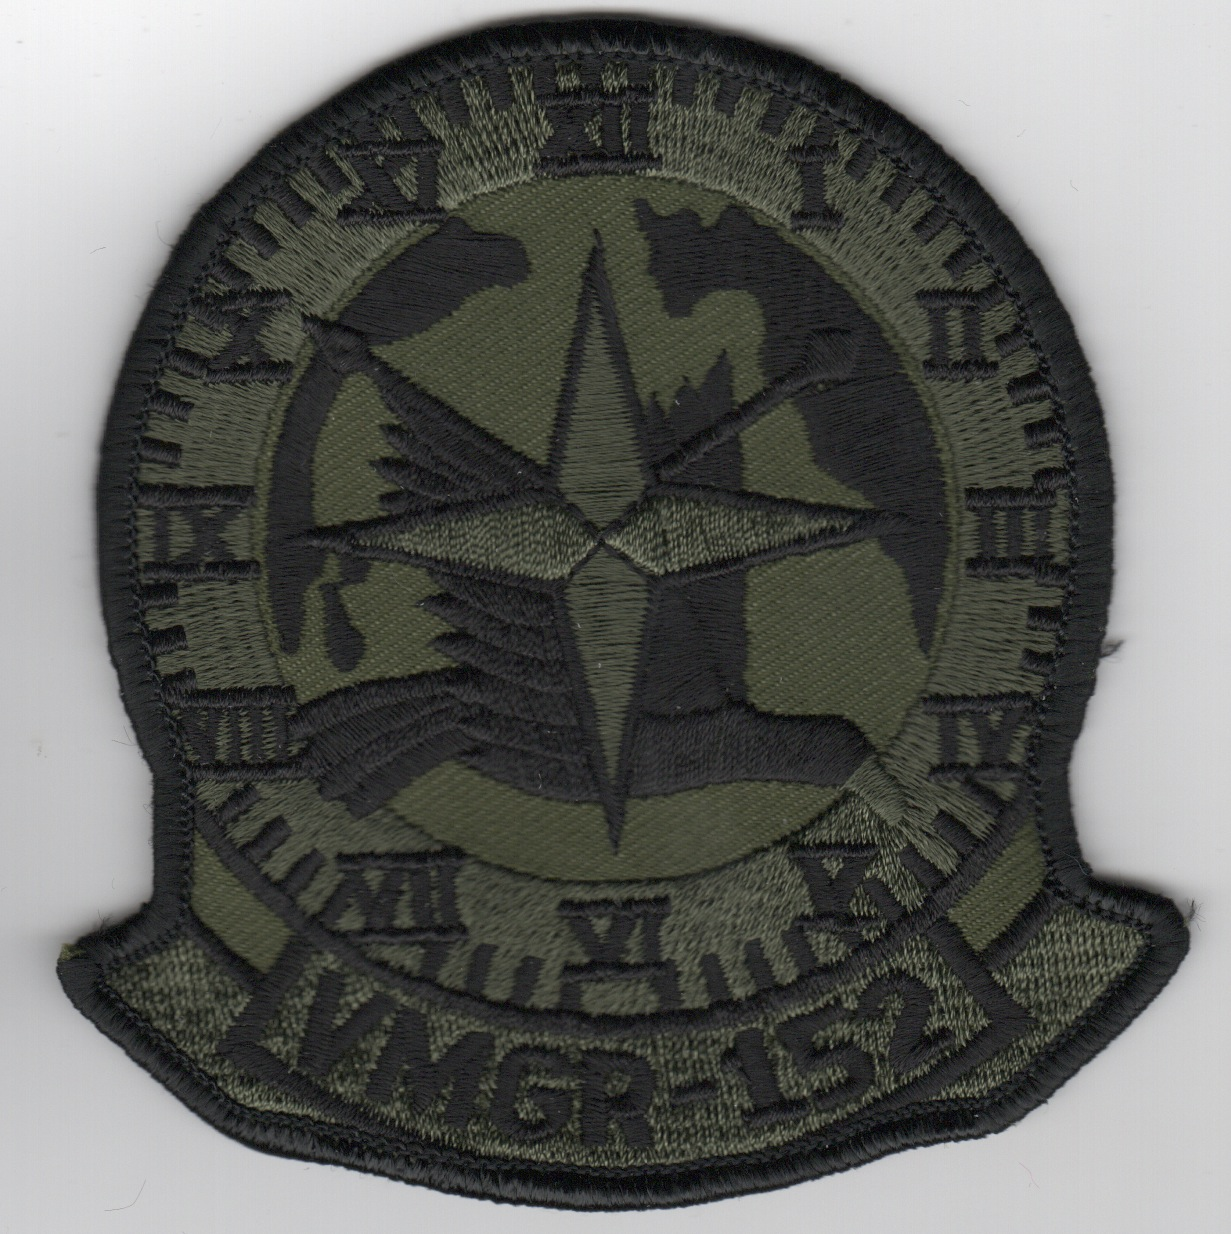 VMGR-152 Squadron Patch (Subd)